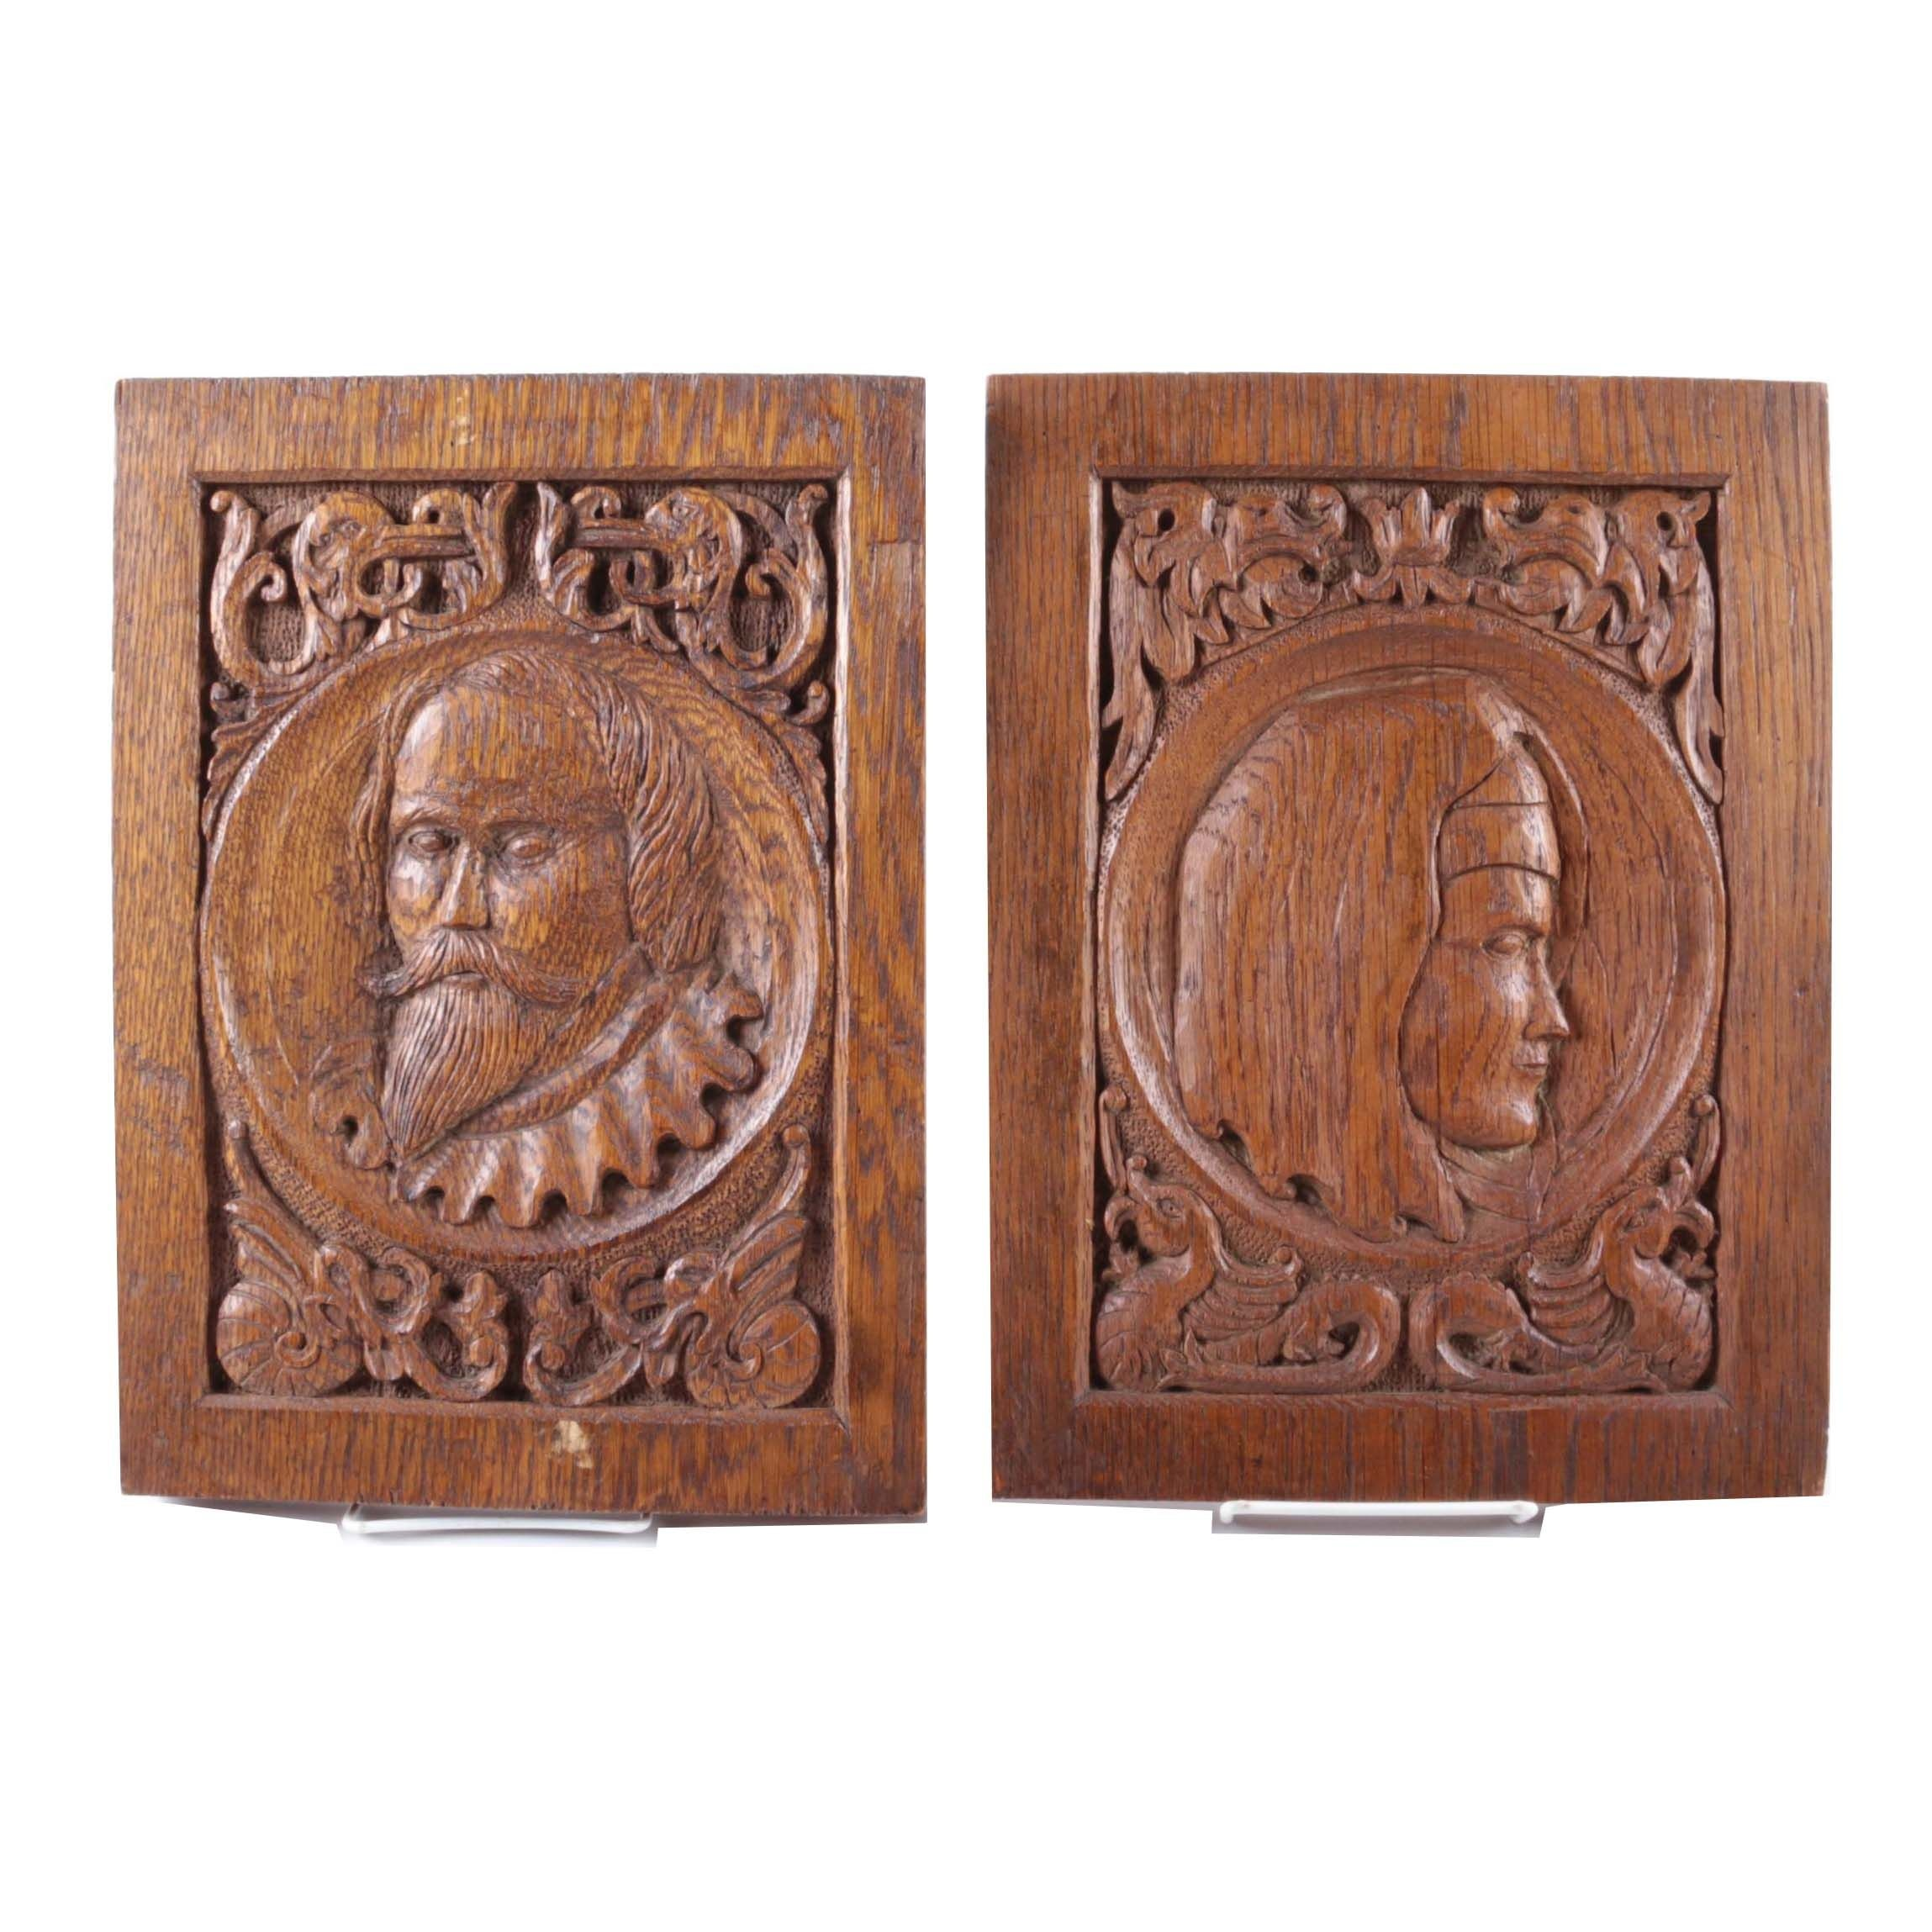 Pair of Carved Wooden Plaques with Relief Portraits of Medieval Figures